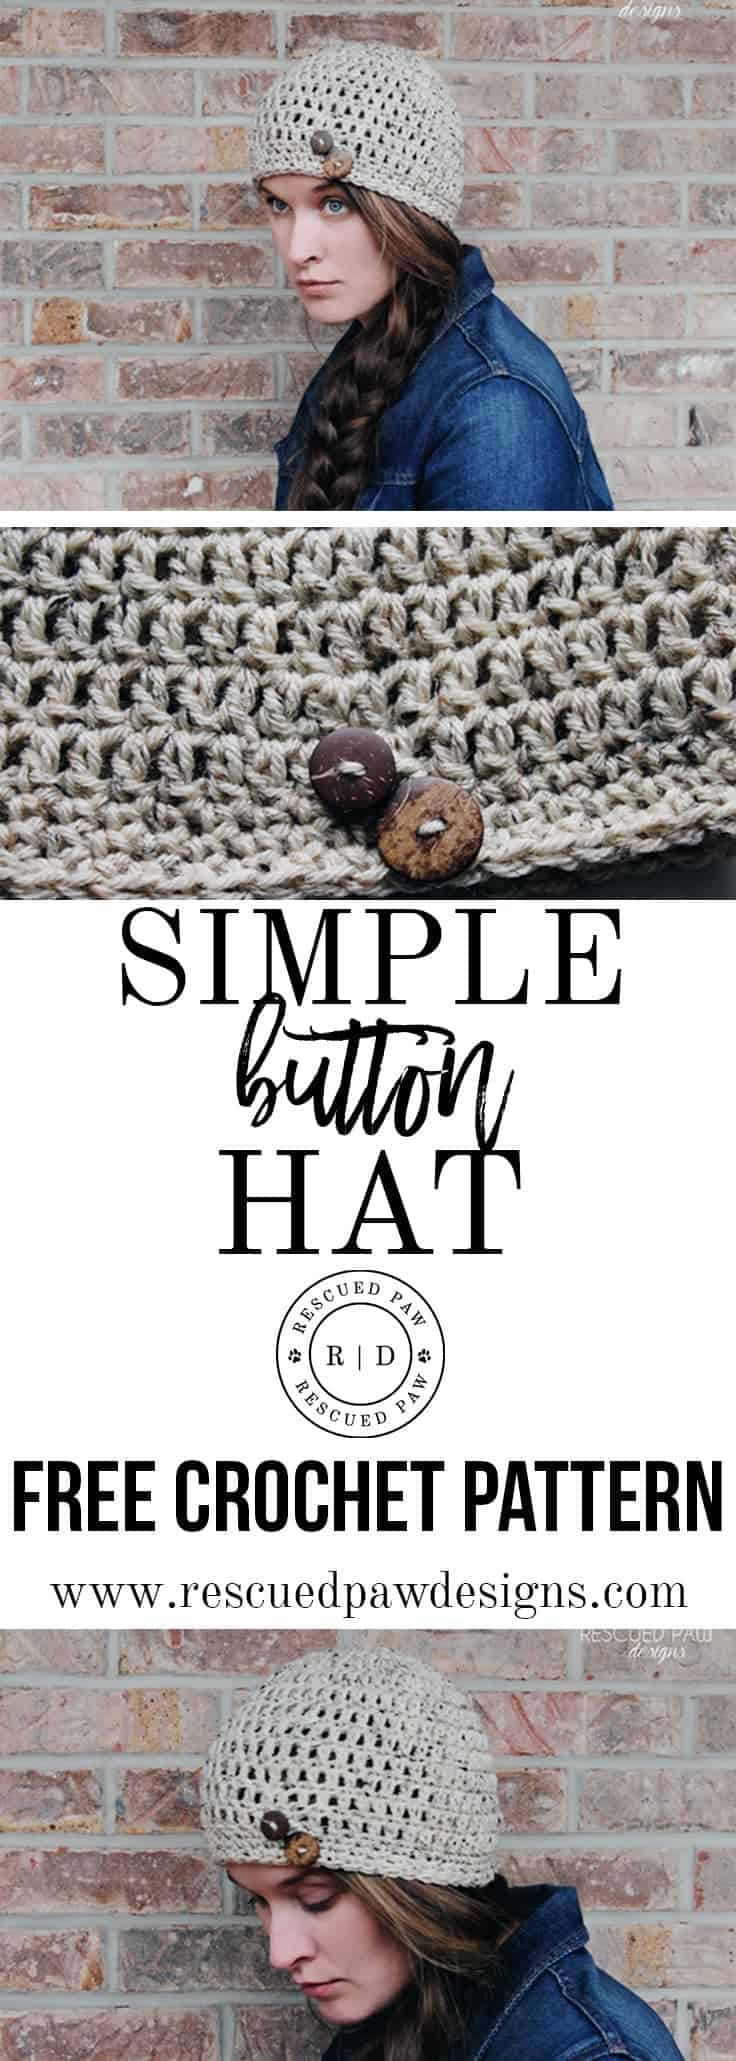 Simple Button Hat (FREE crochet pattern) from Rescued Paw Designs - www.rescuedpawdesigns.com